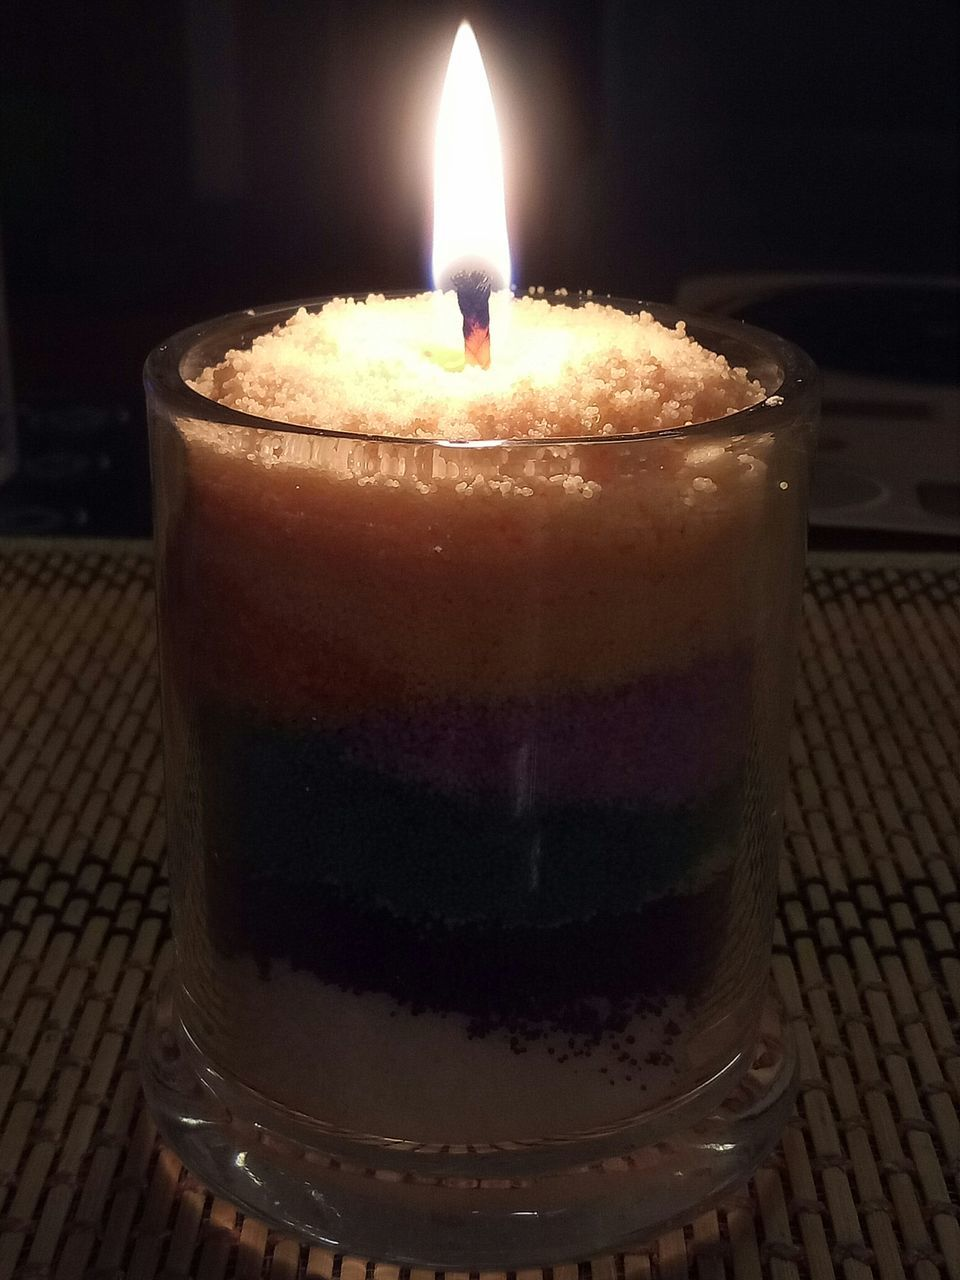 candle, flame, burning, glowing, close-up, illuminated, heat - temperature, indoors, night, focus on foreground, no people